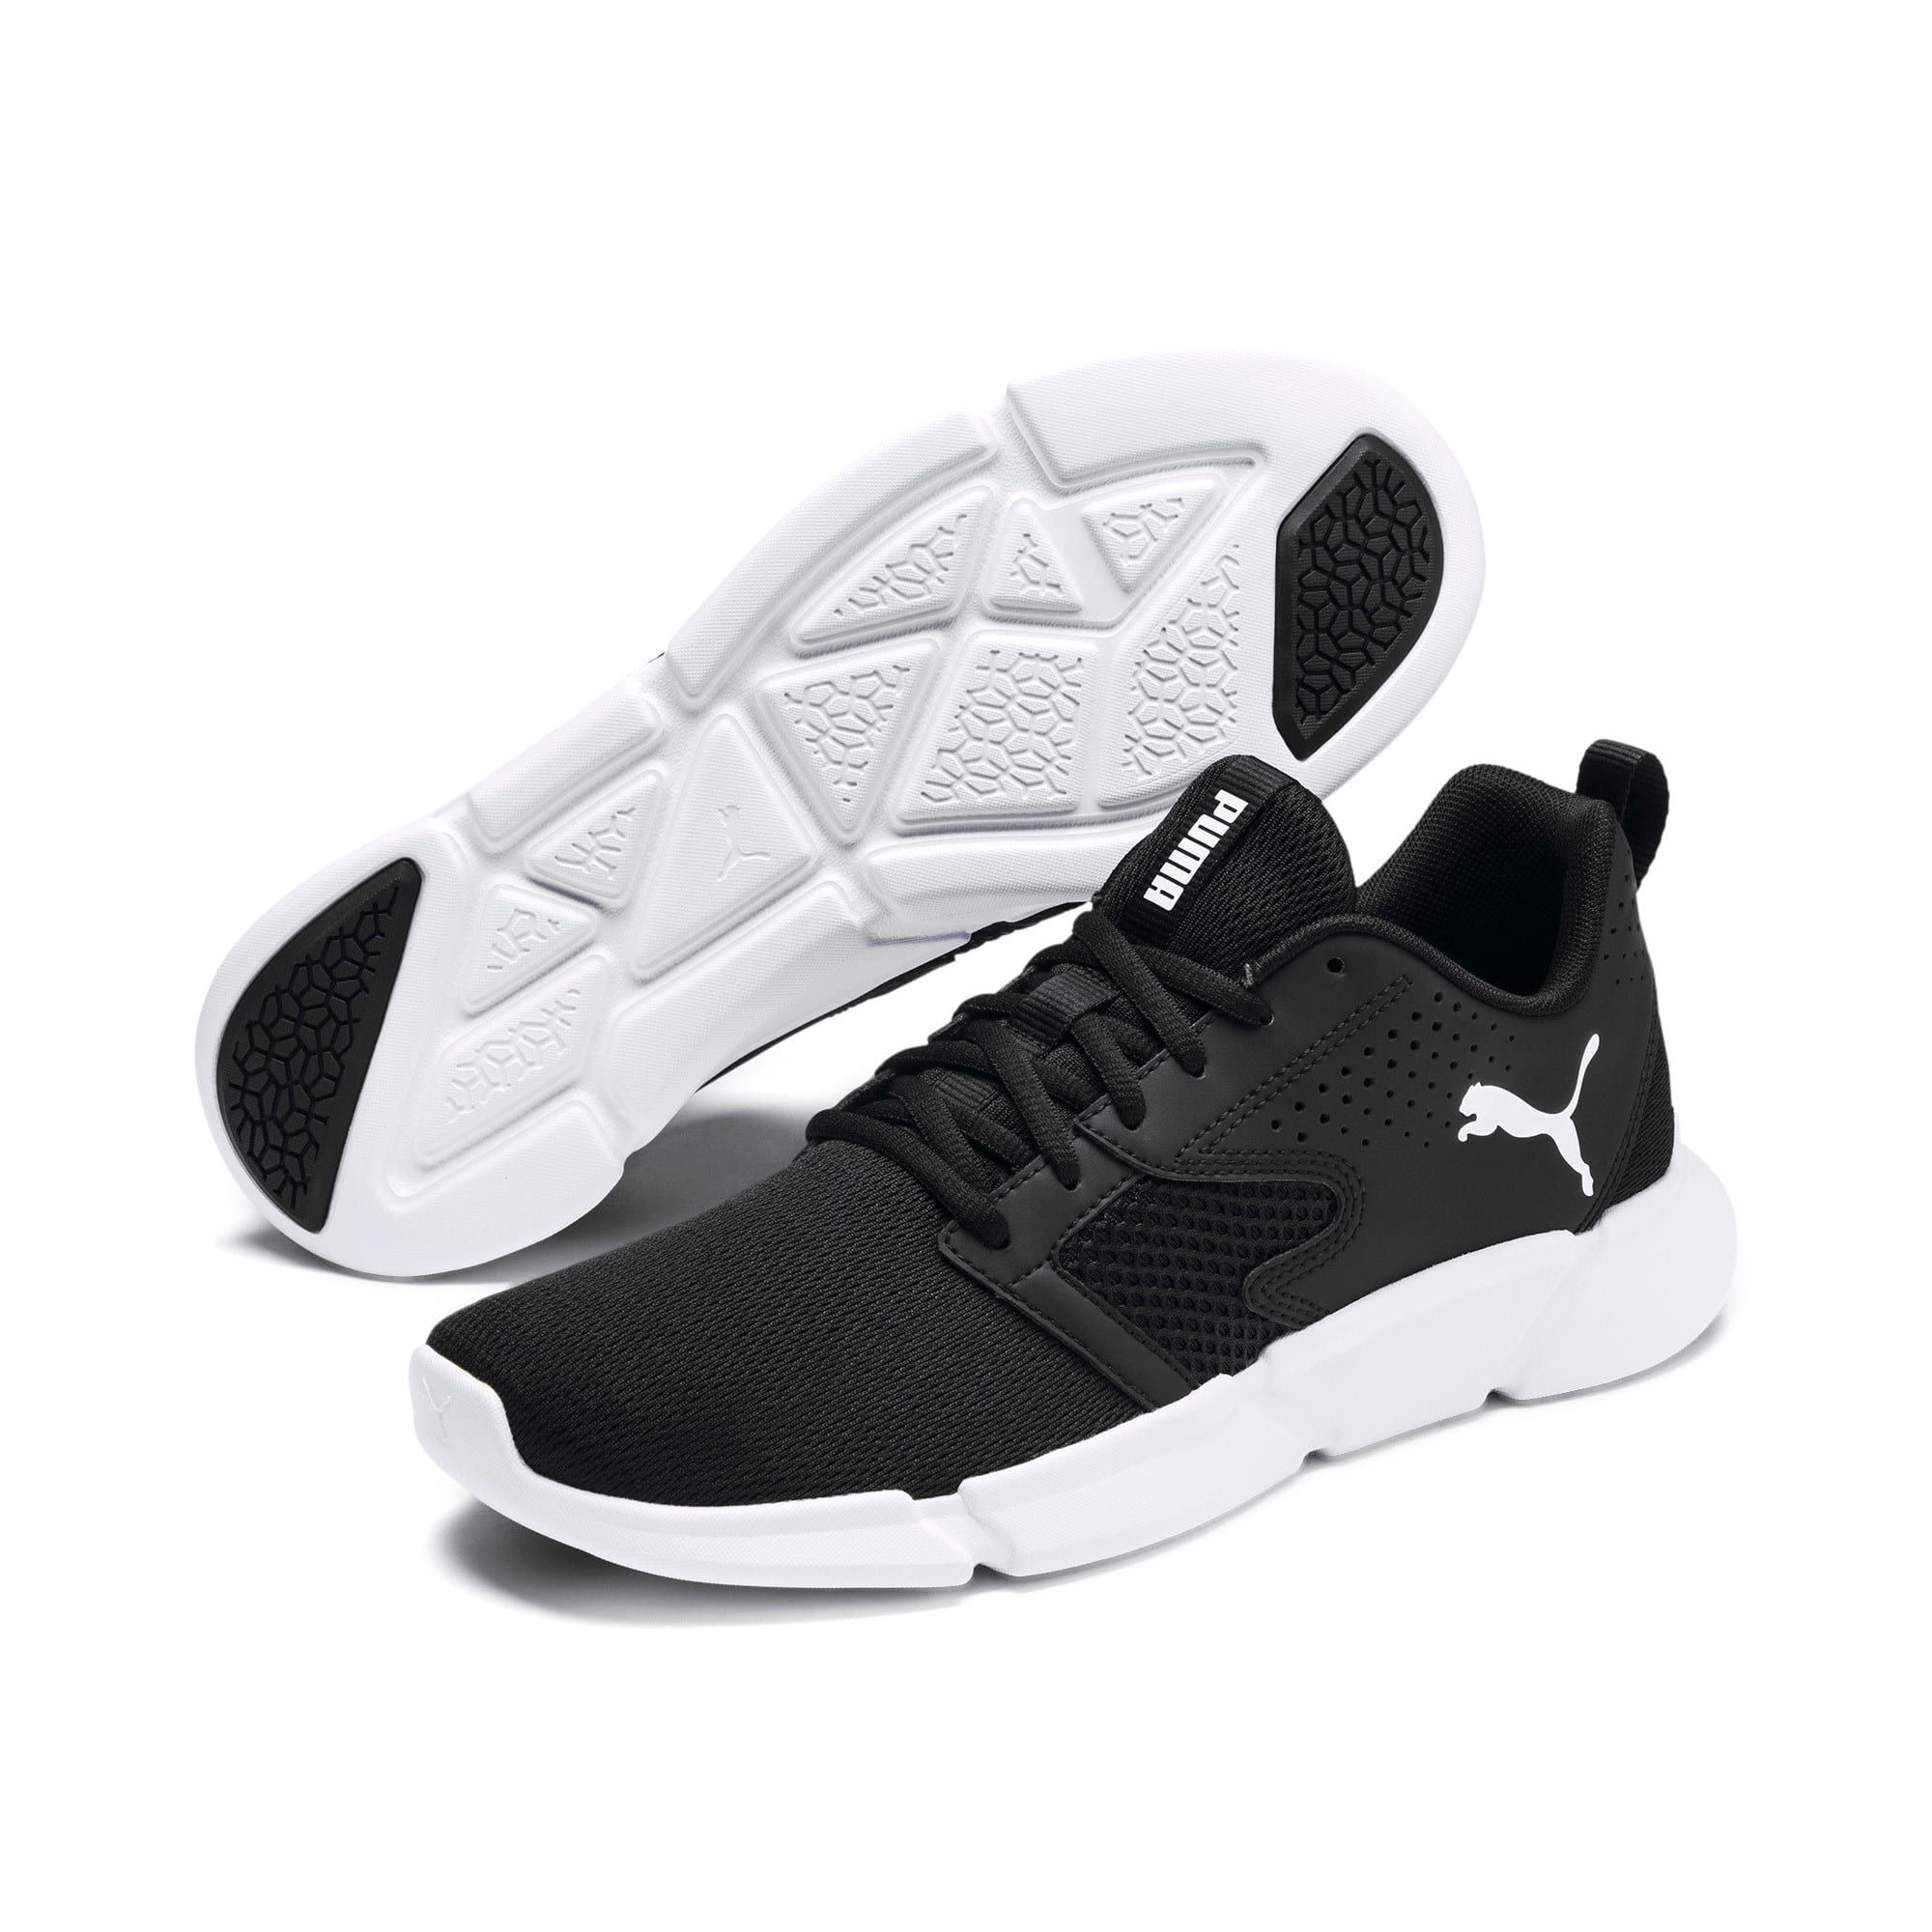 Thumbnail 2 of INTERFLEX Modern Sneakers, Puma Black-Puma White, medium